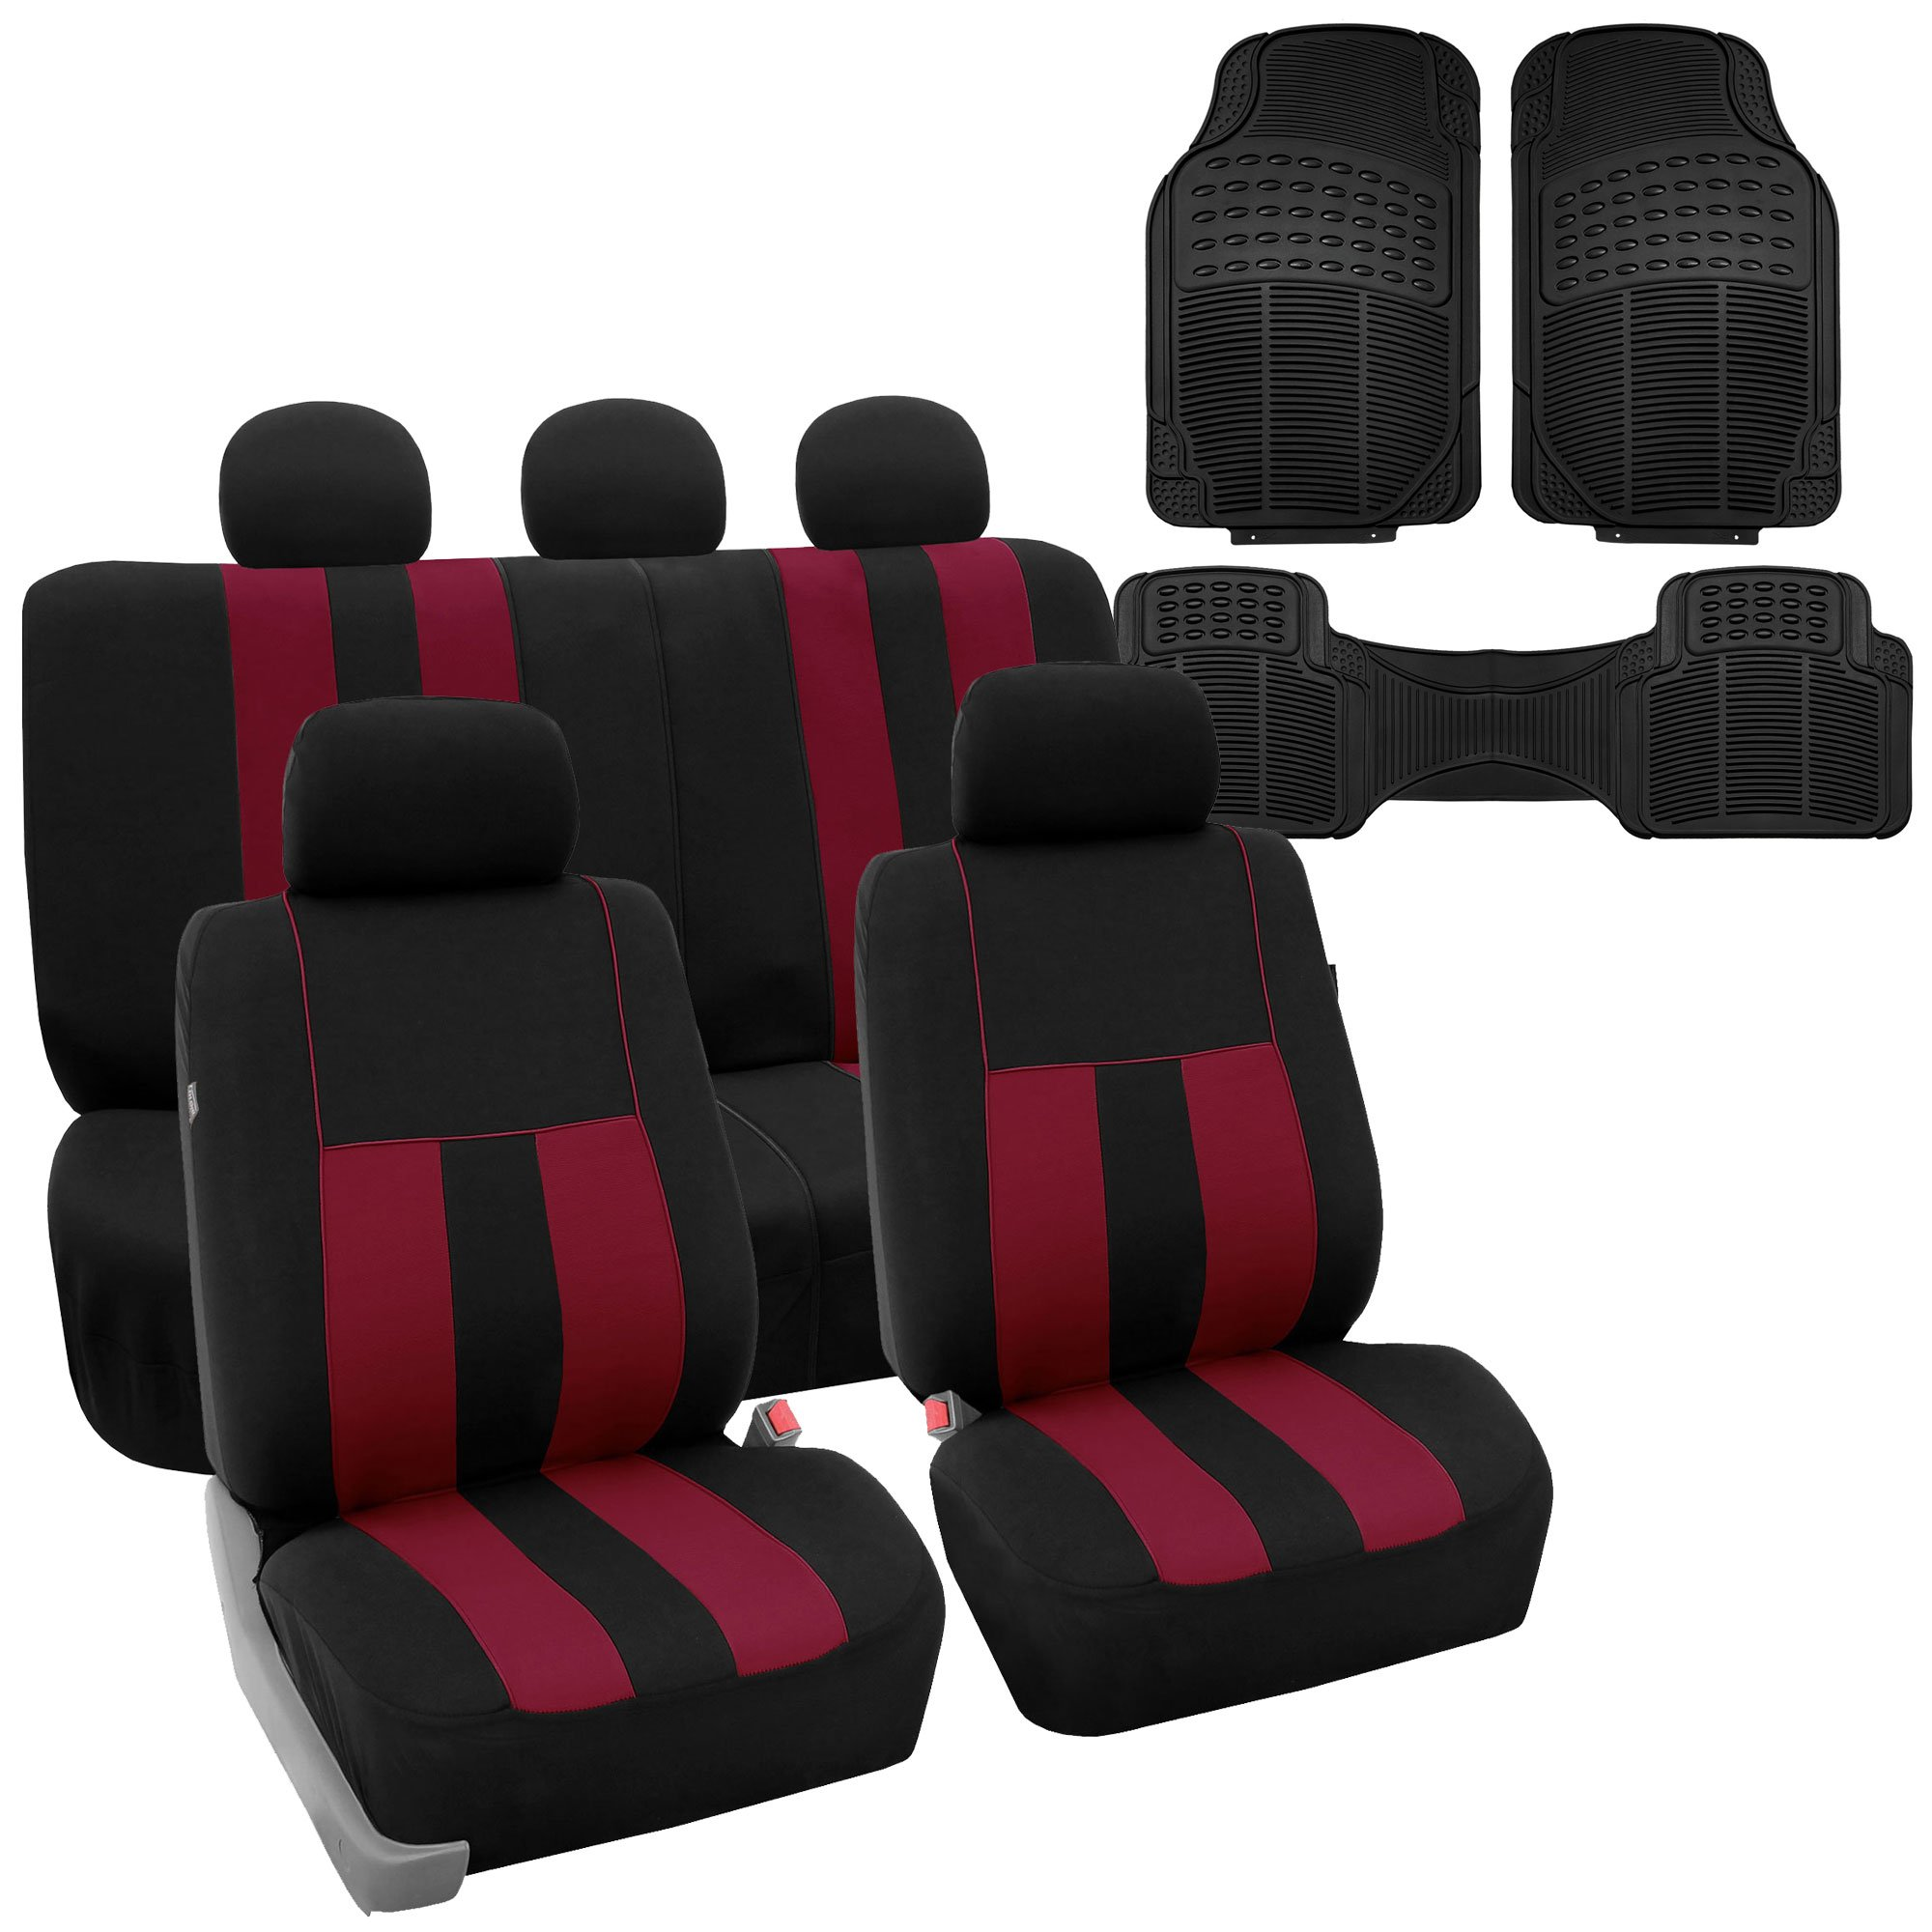 FH GROUP FB036115 Striking Striped Seat Covers, Burgundy / Black with F11306 Vinyl Floor Mats- Fit Most Car, Truck, Suv, or Van